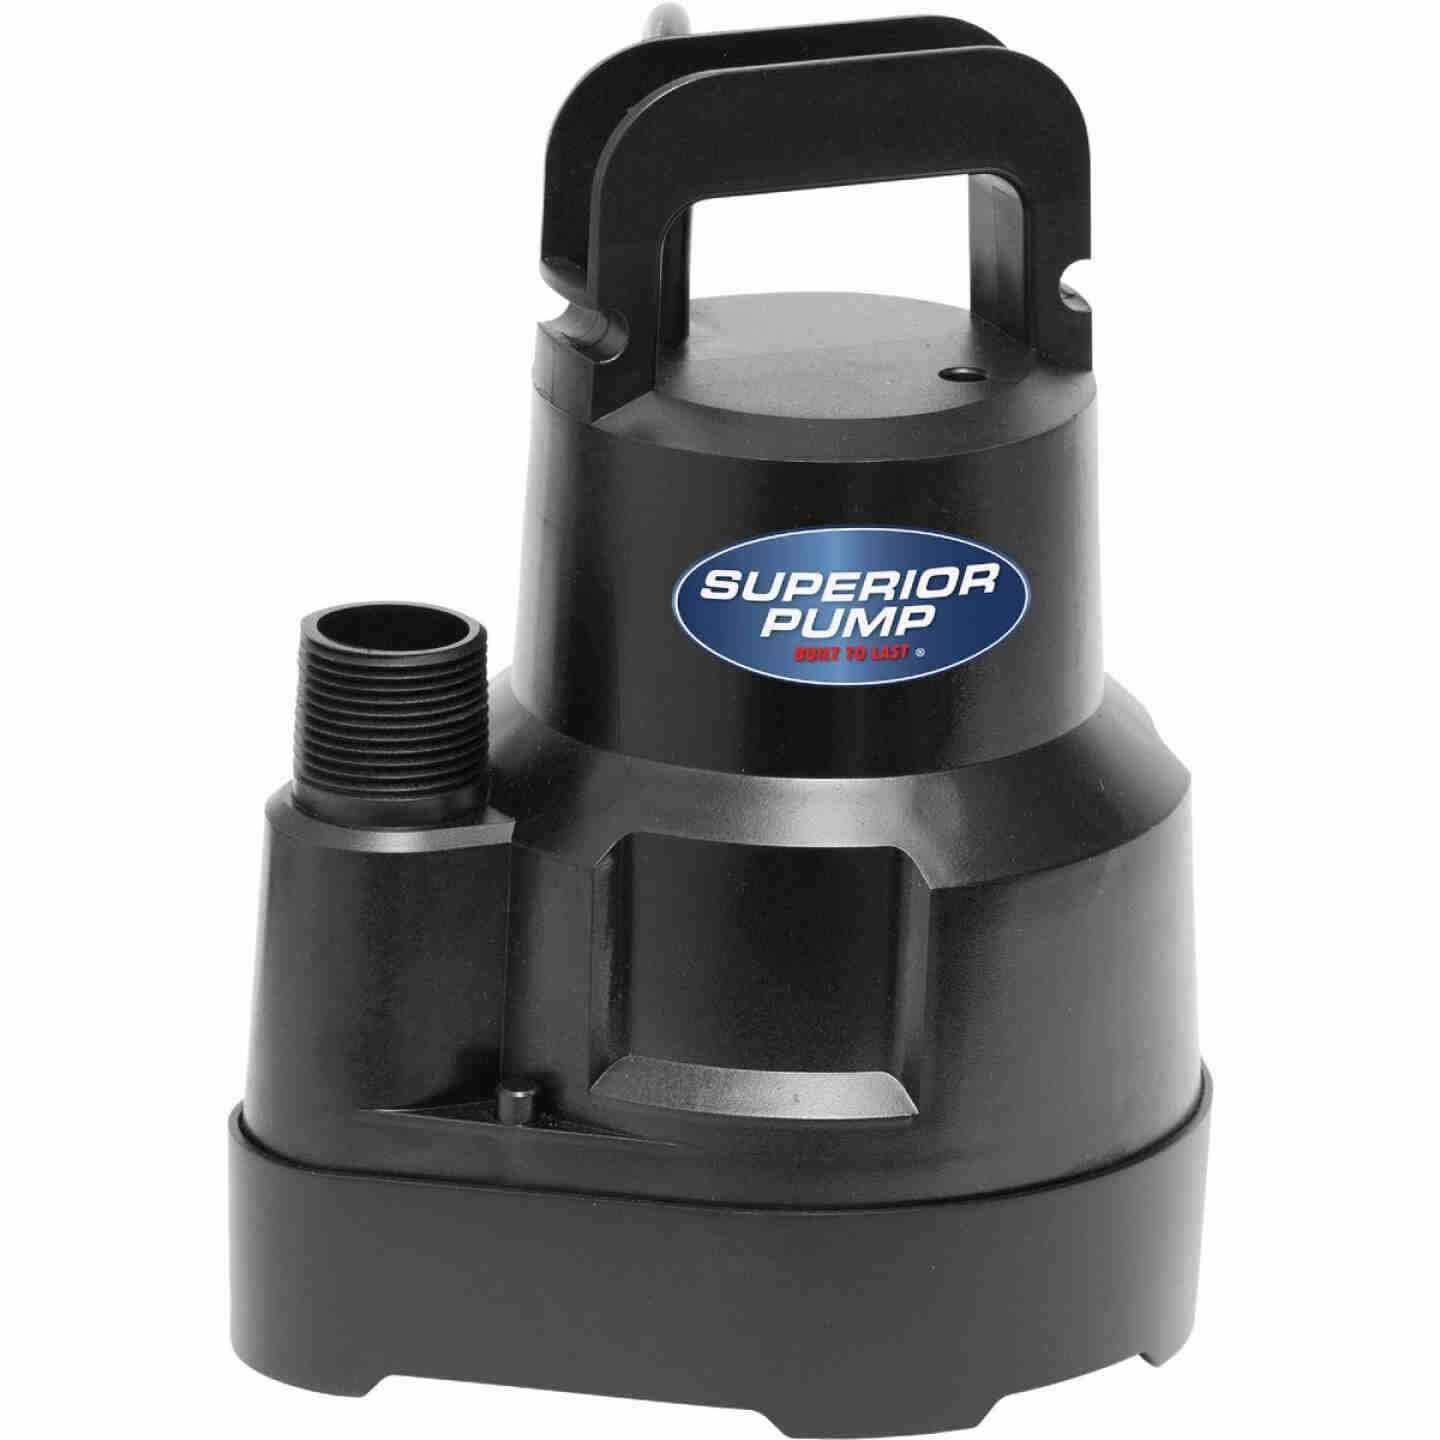 Superior Pump 1/6 HP 1920 GPH Oil-Free Submersible Utility Pump Image 4